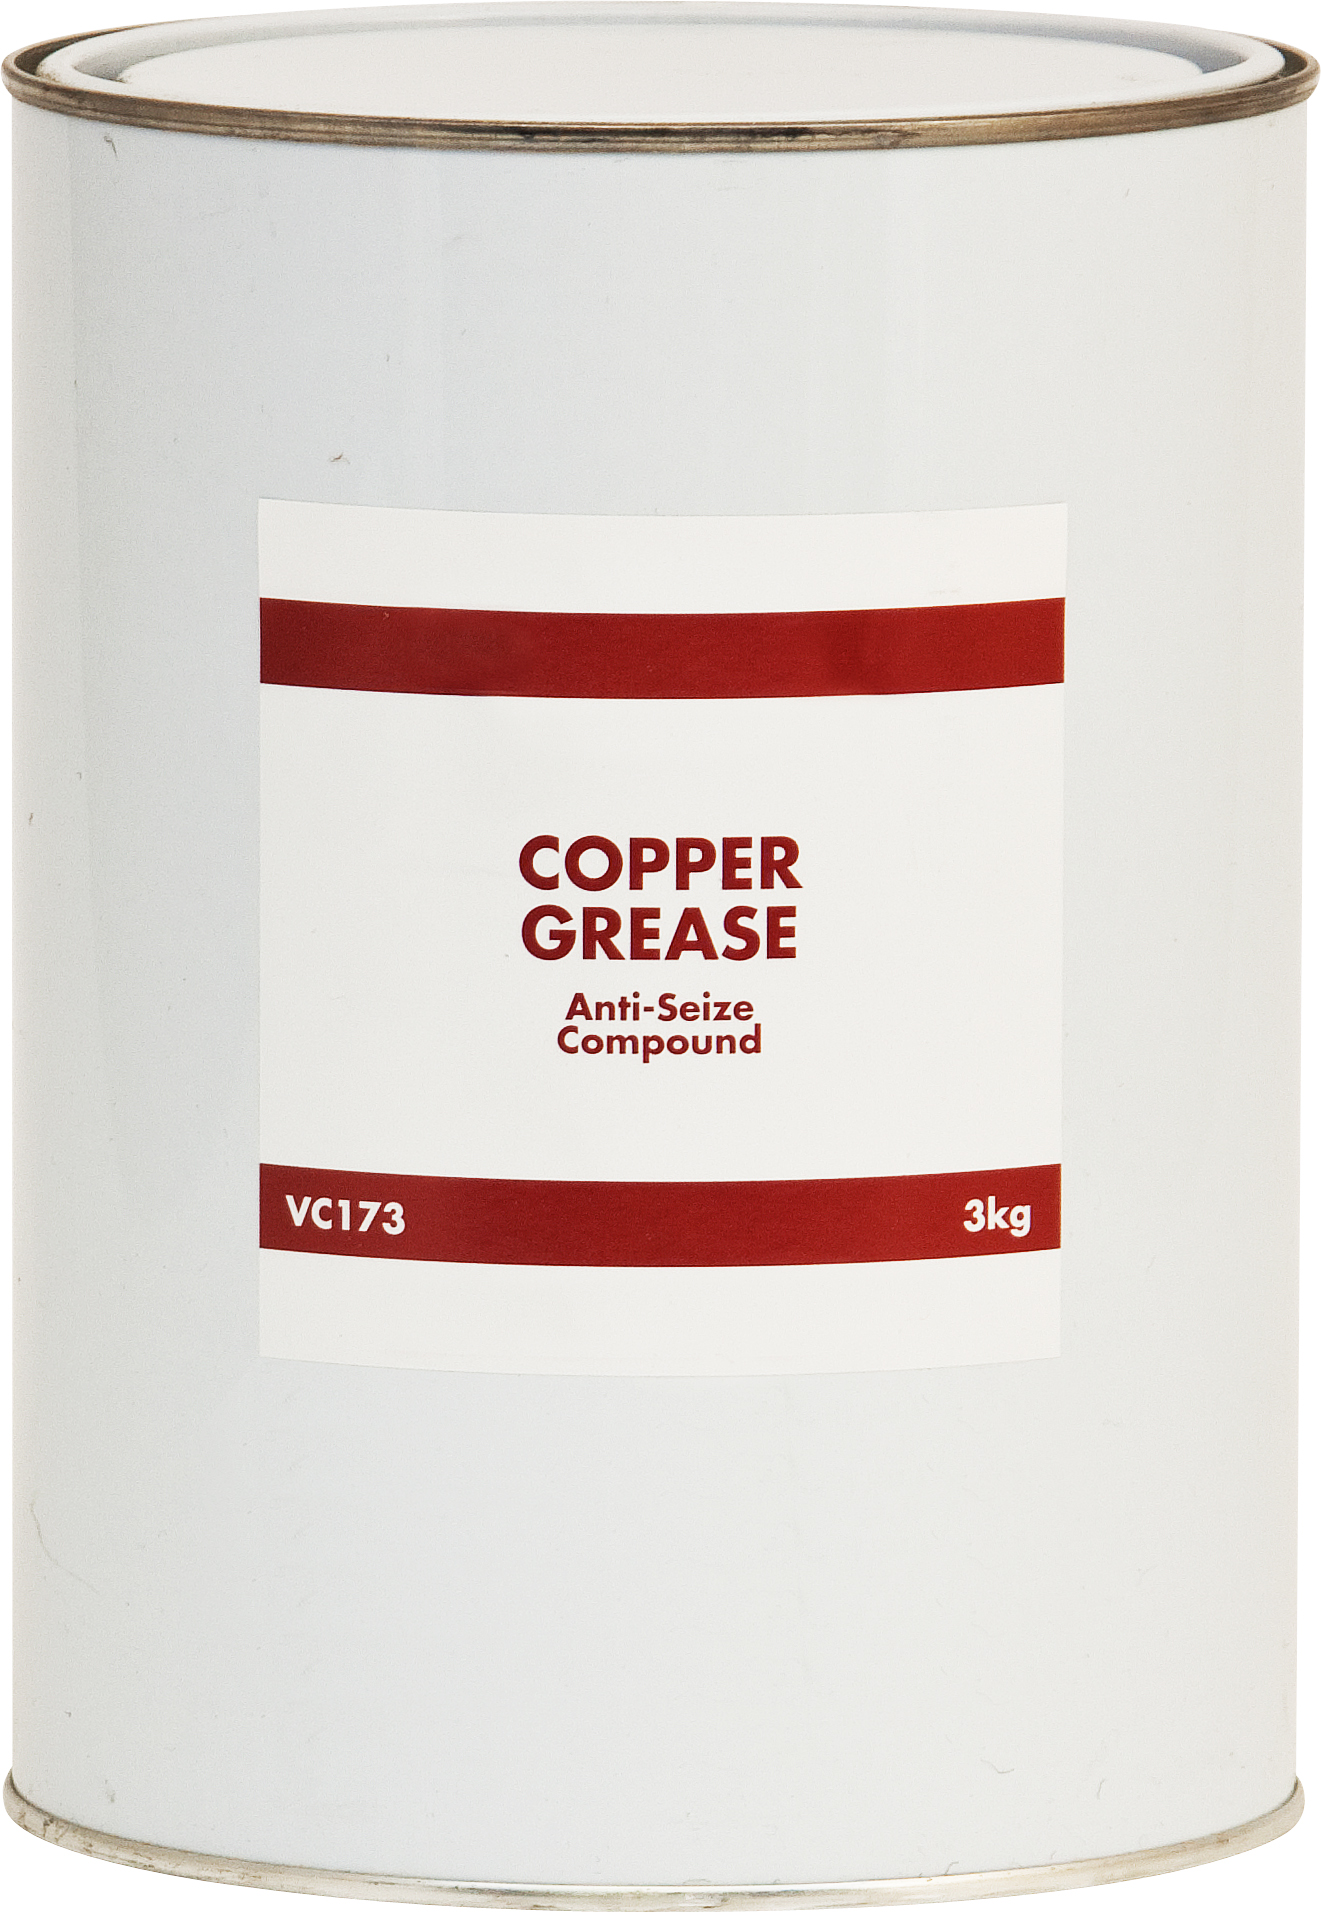 COPPER GREASE 3KG TIN (1)